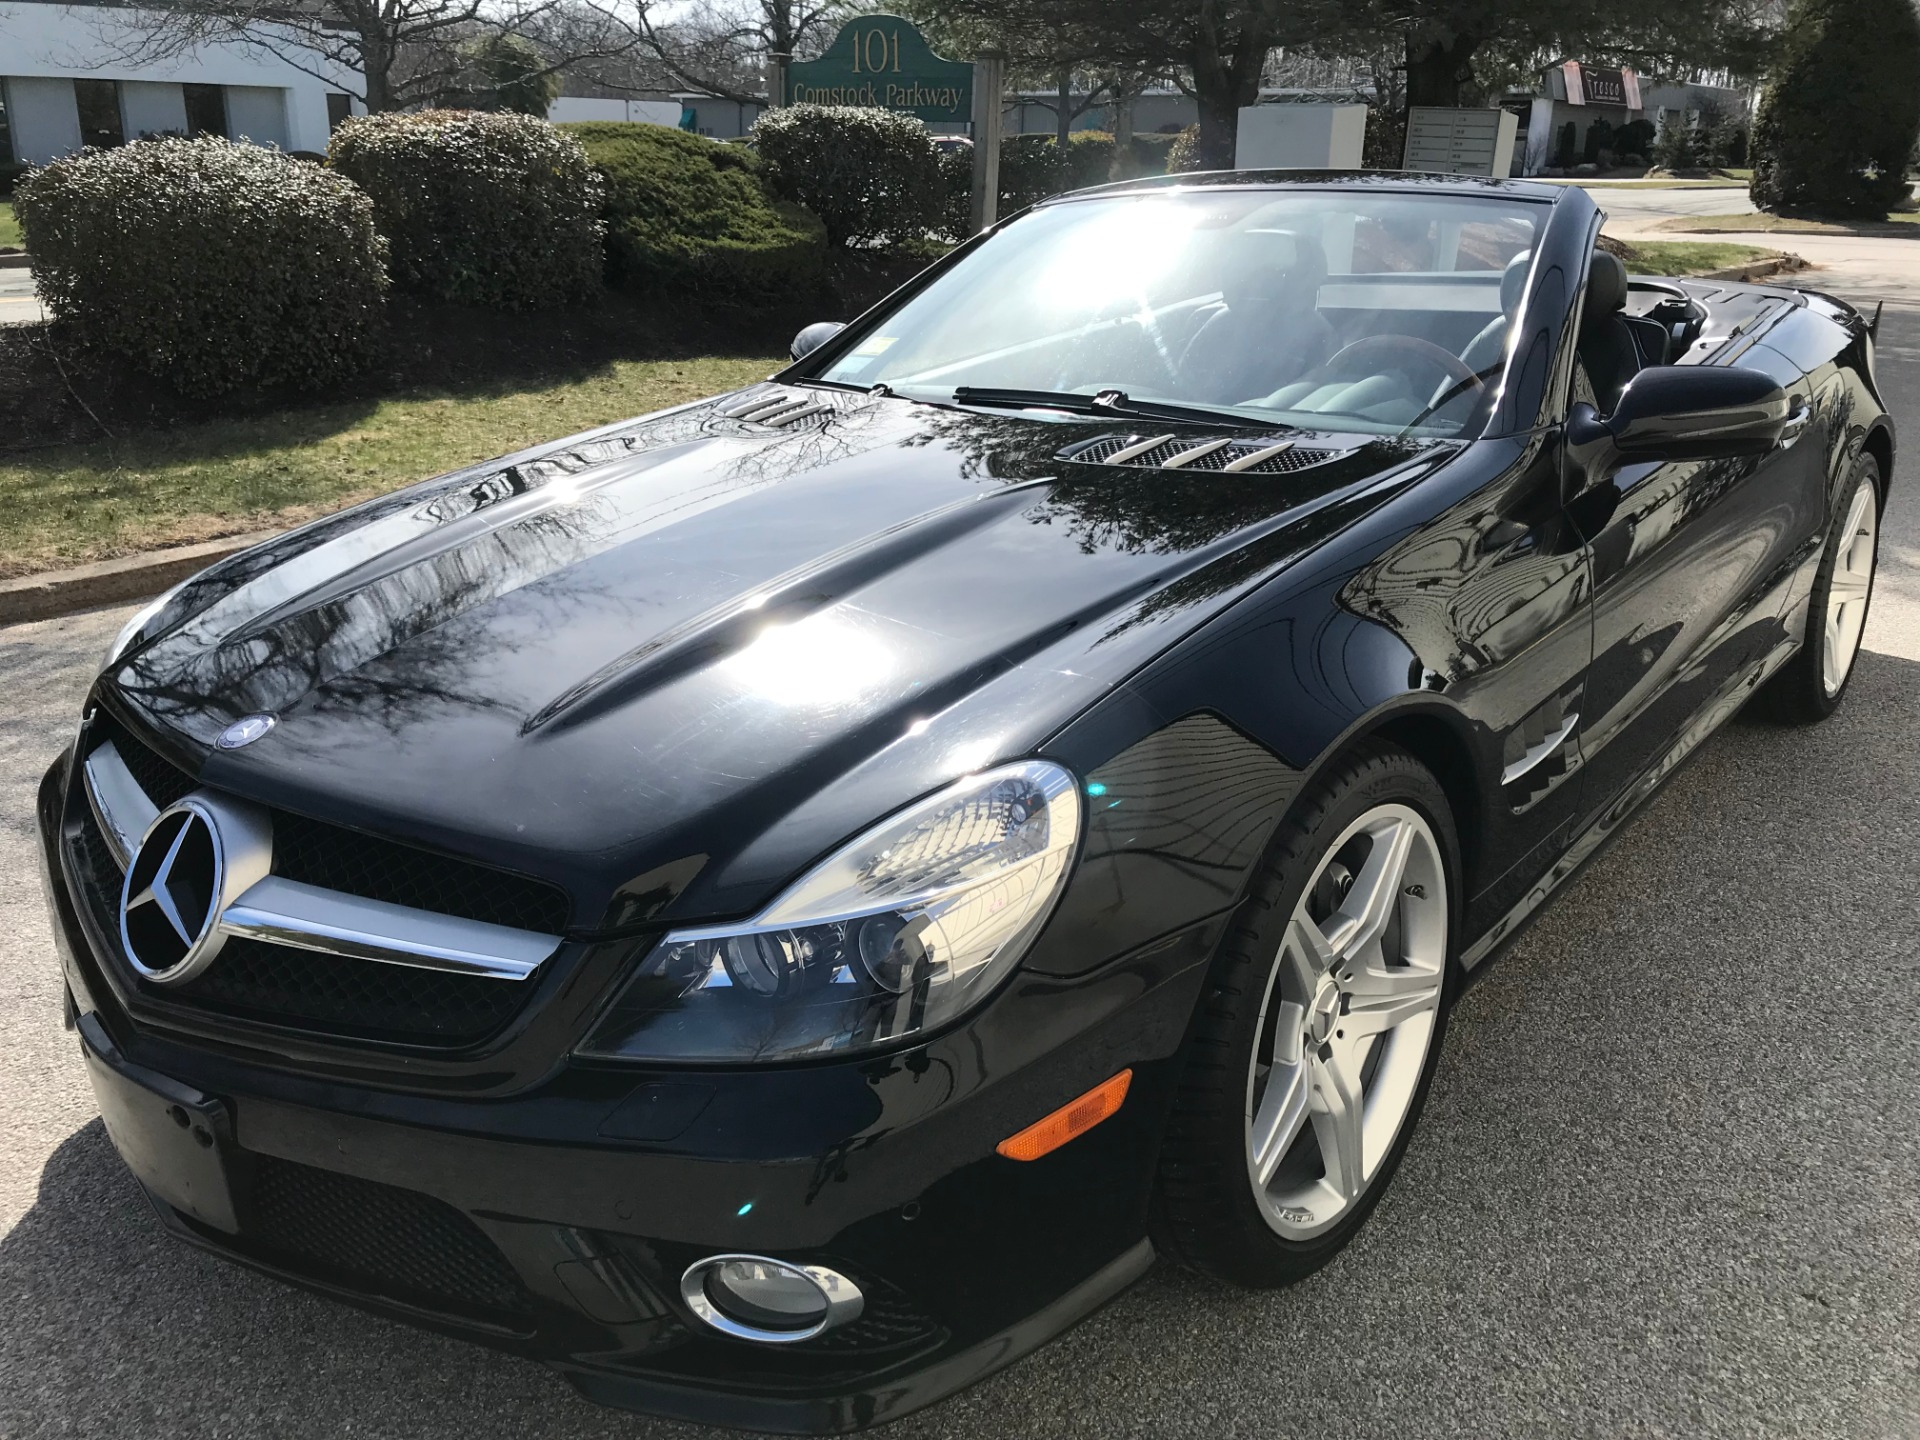 Used 2009 Mercedes Benz SL550 550 For Sale 27900 Executive Auto Sales Stock 1634